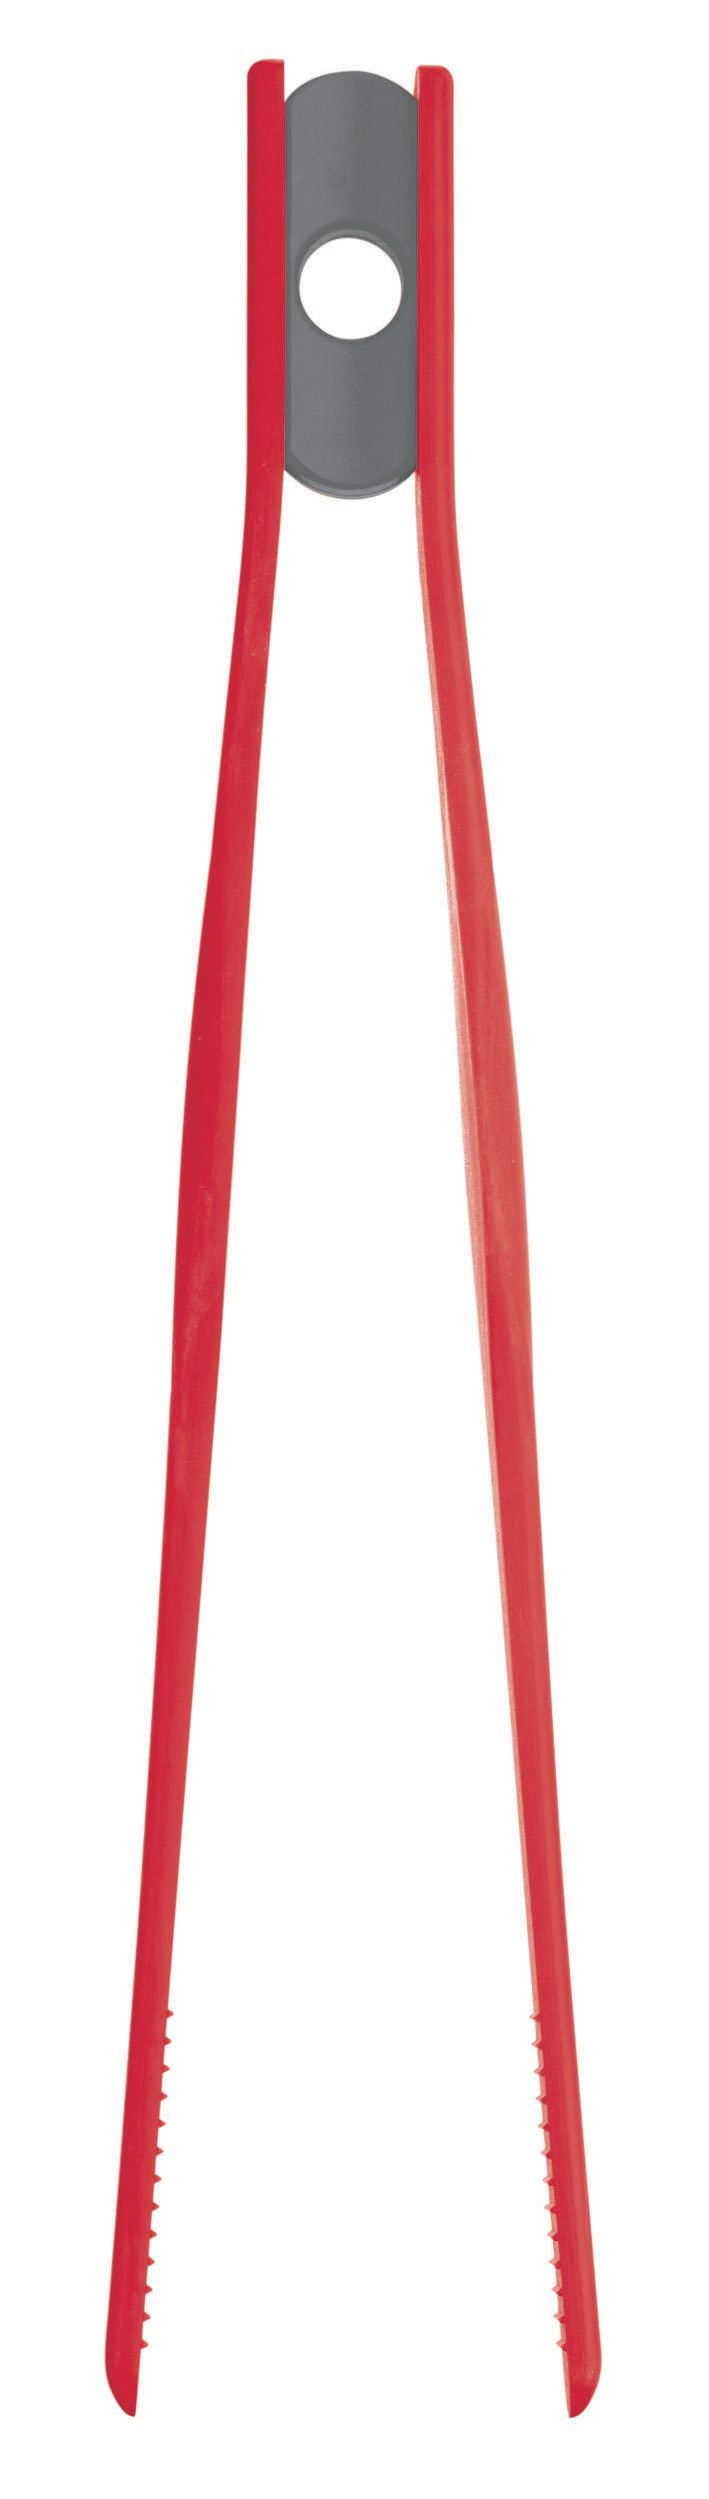 Colourworks red tweezer tongs